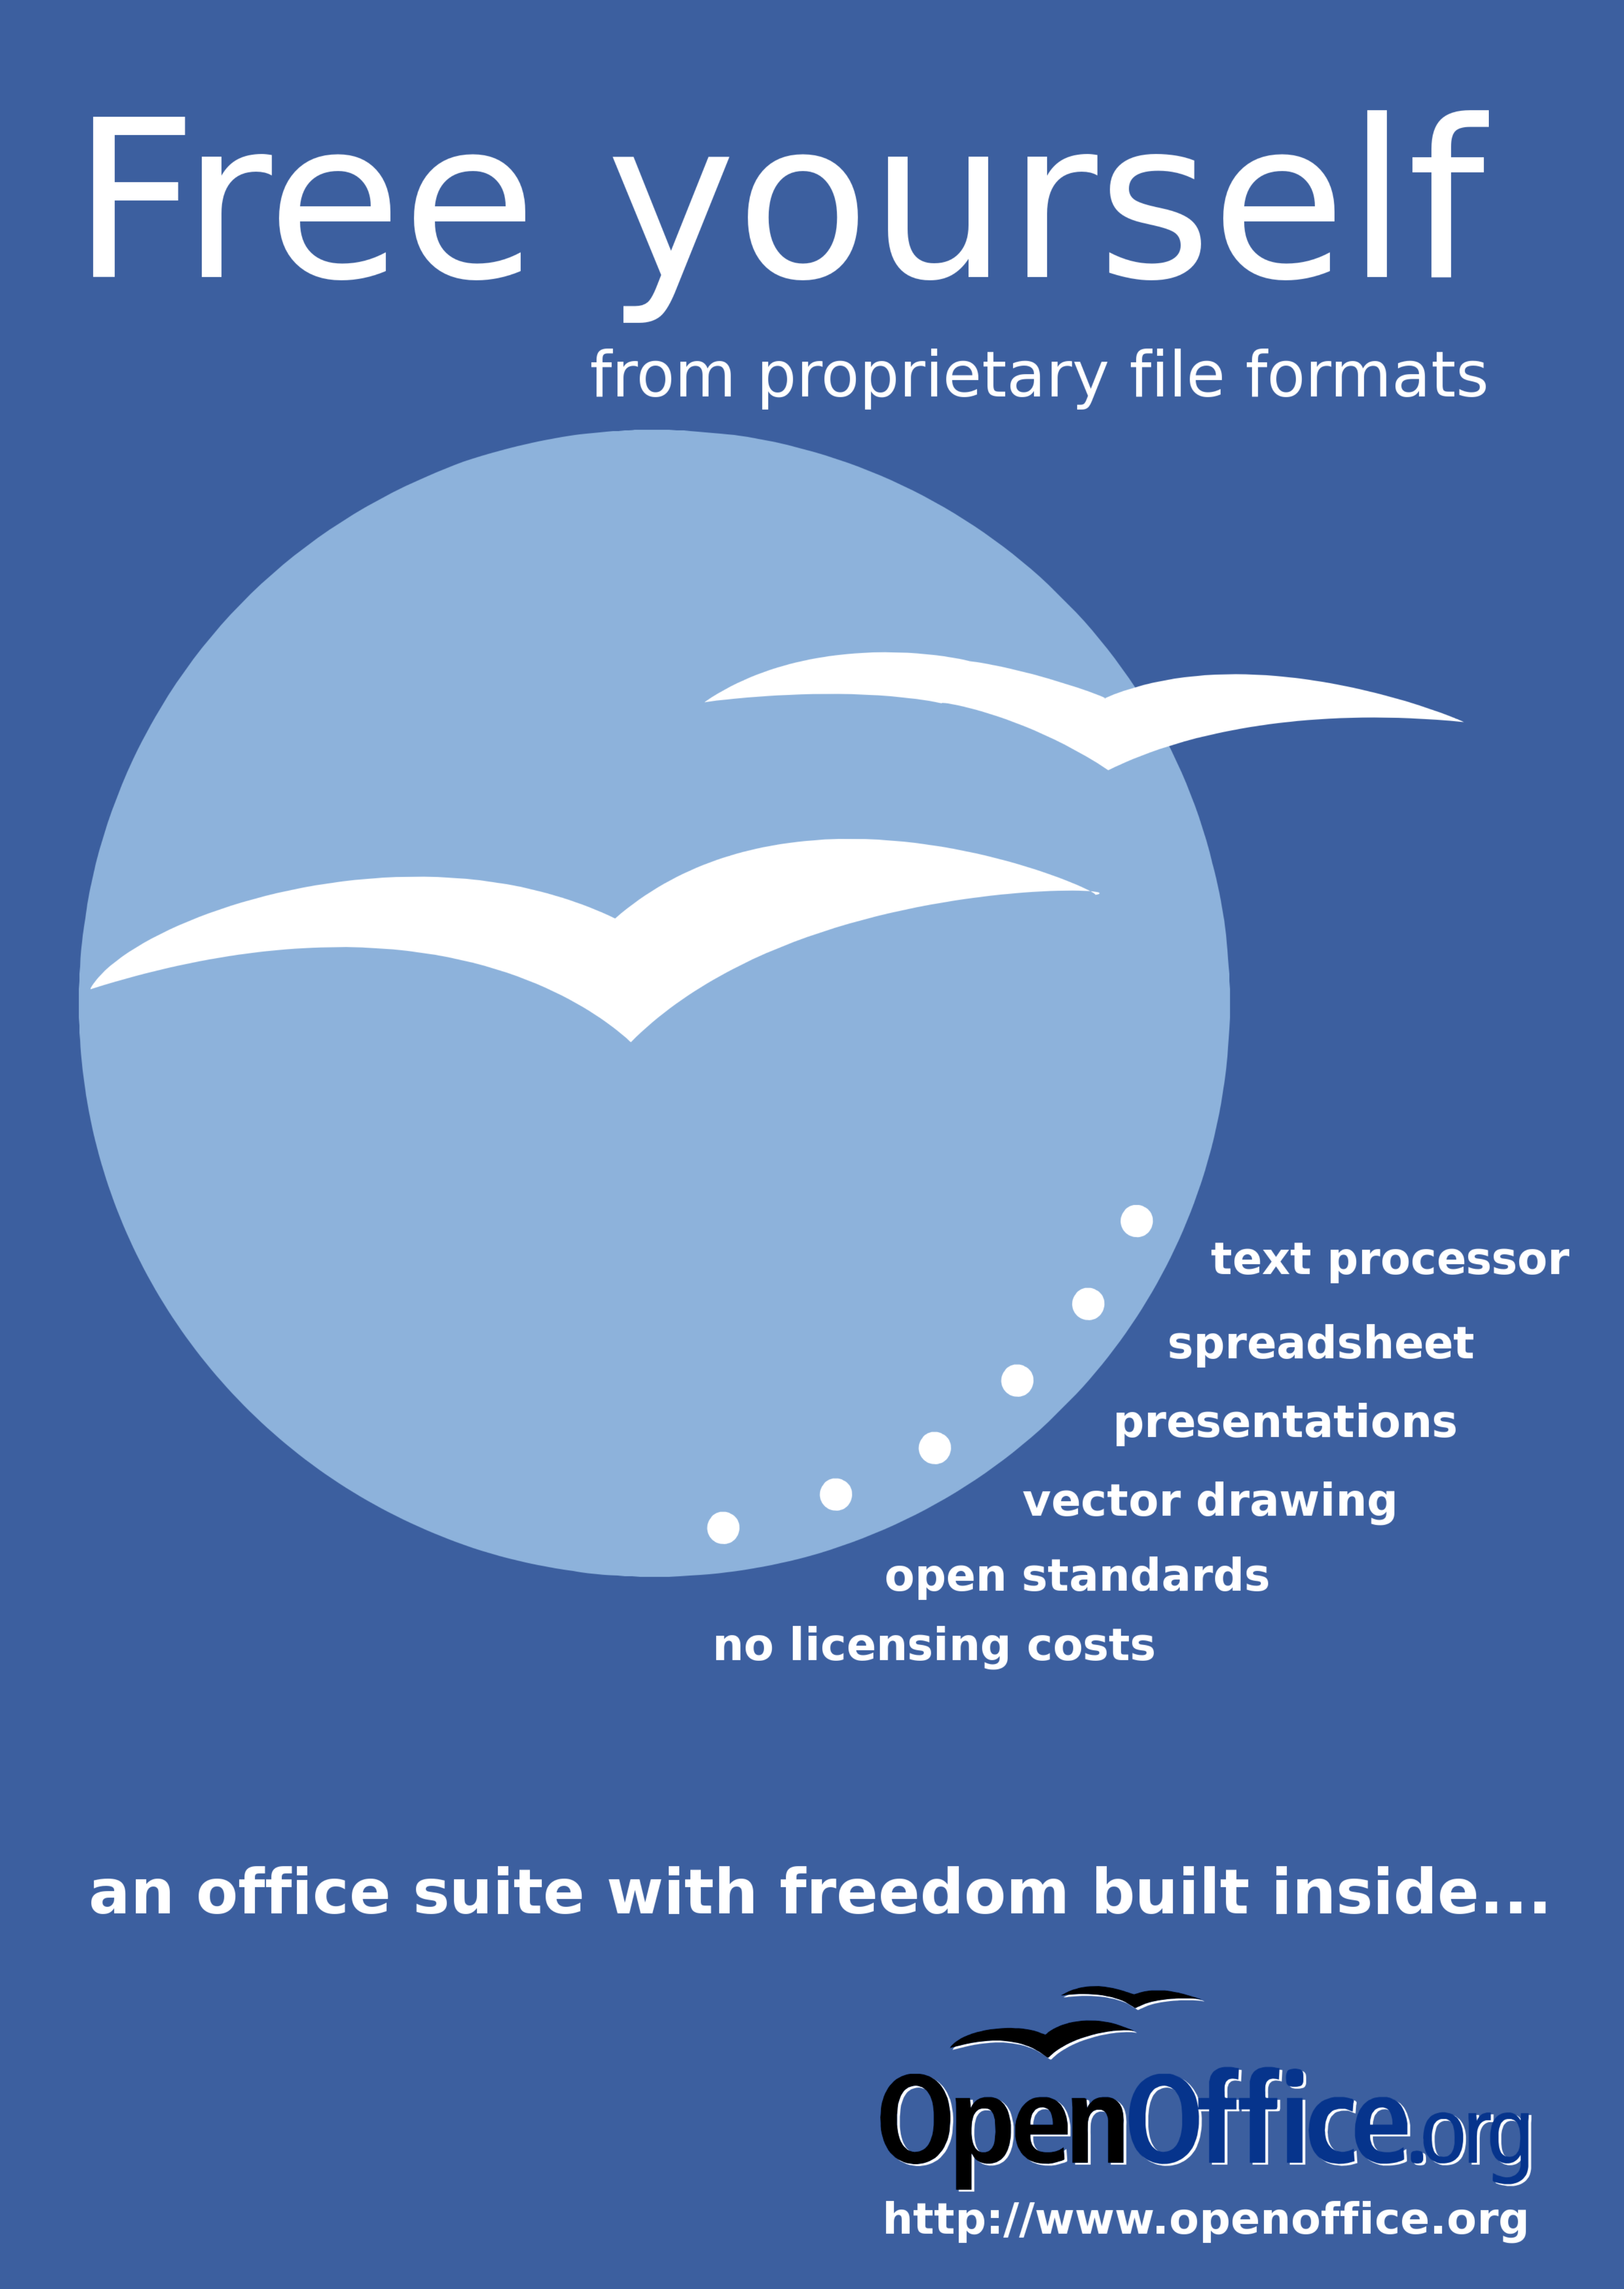 openoffice org promotional posters